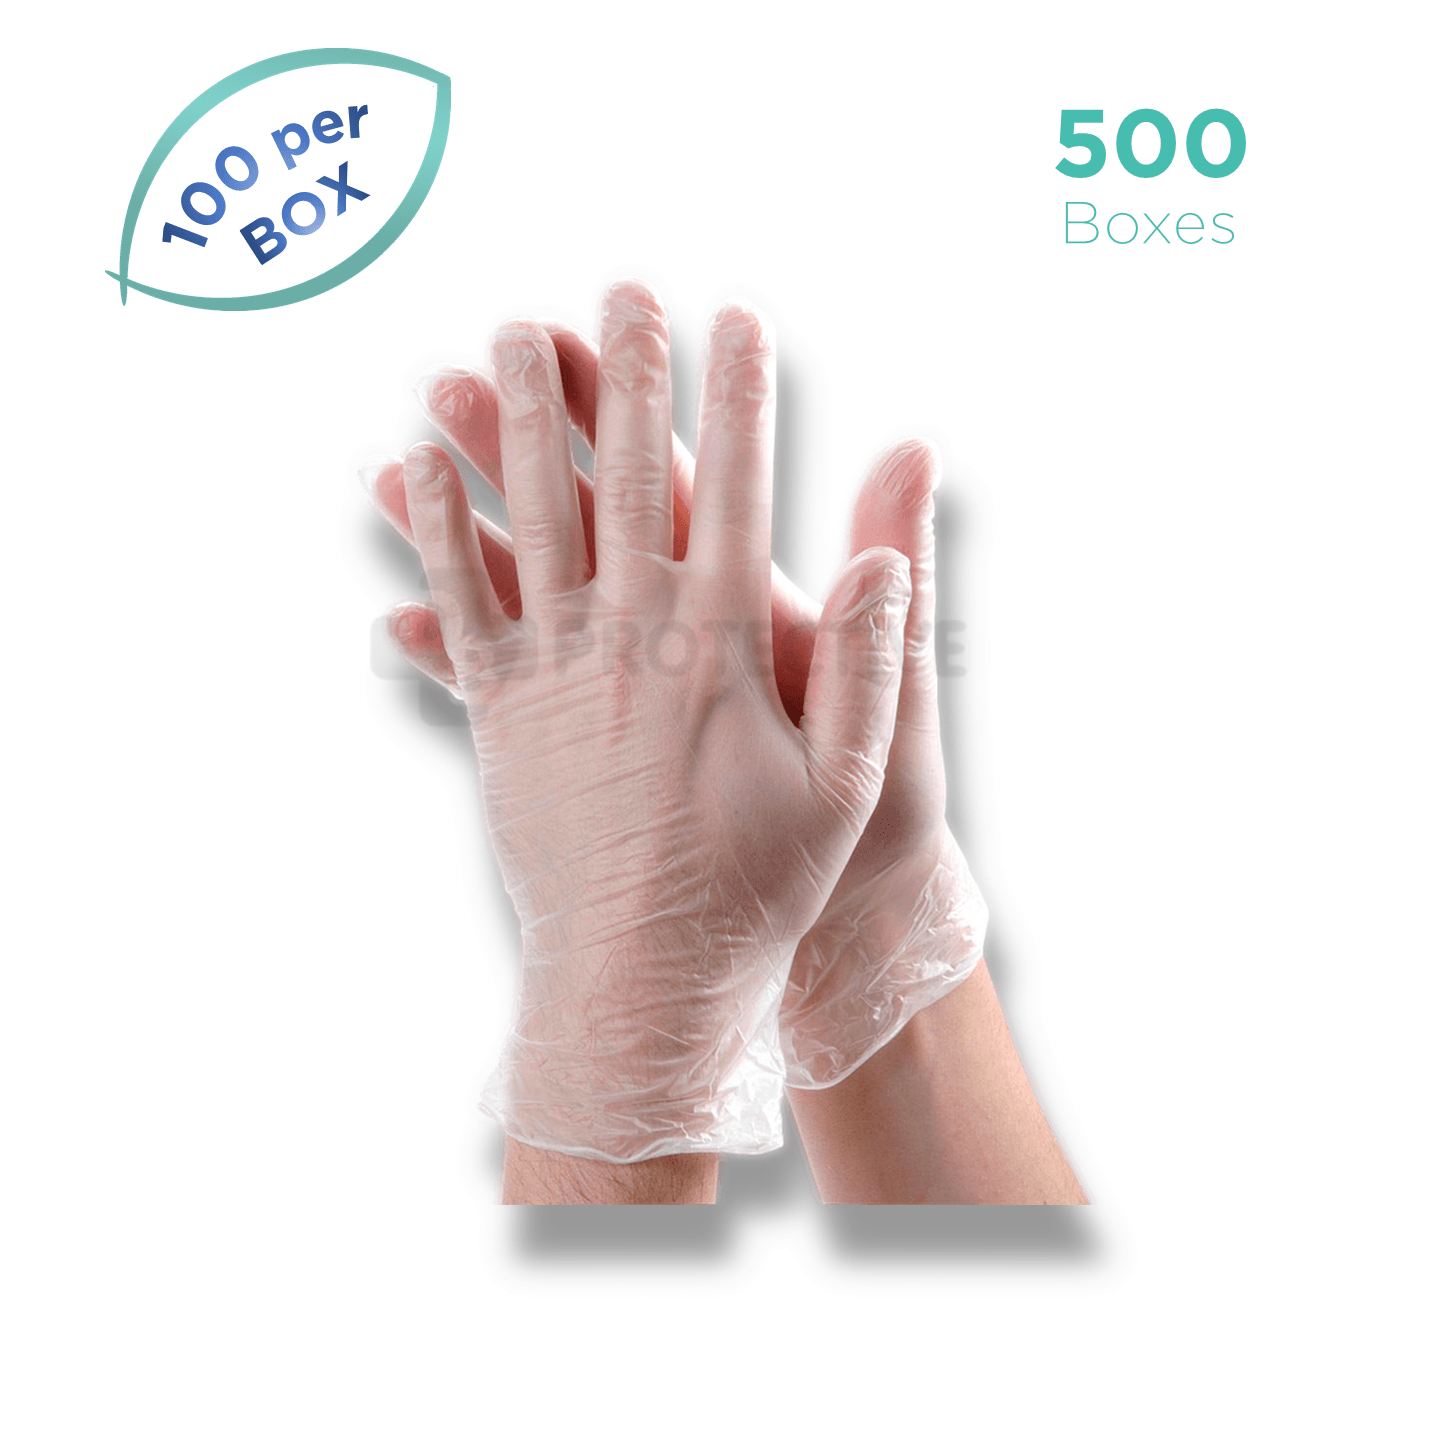 Vinyl Examination Gloves - Pack of 50,000. - USA Medical Supply - DB Protective